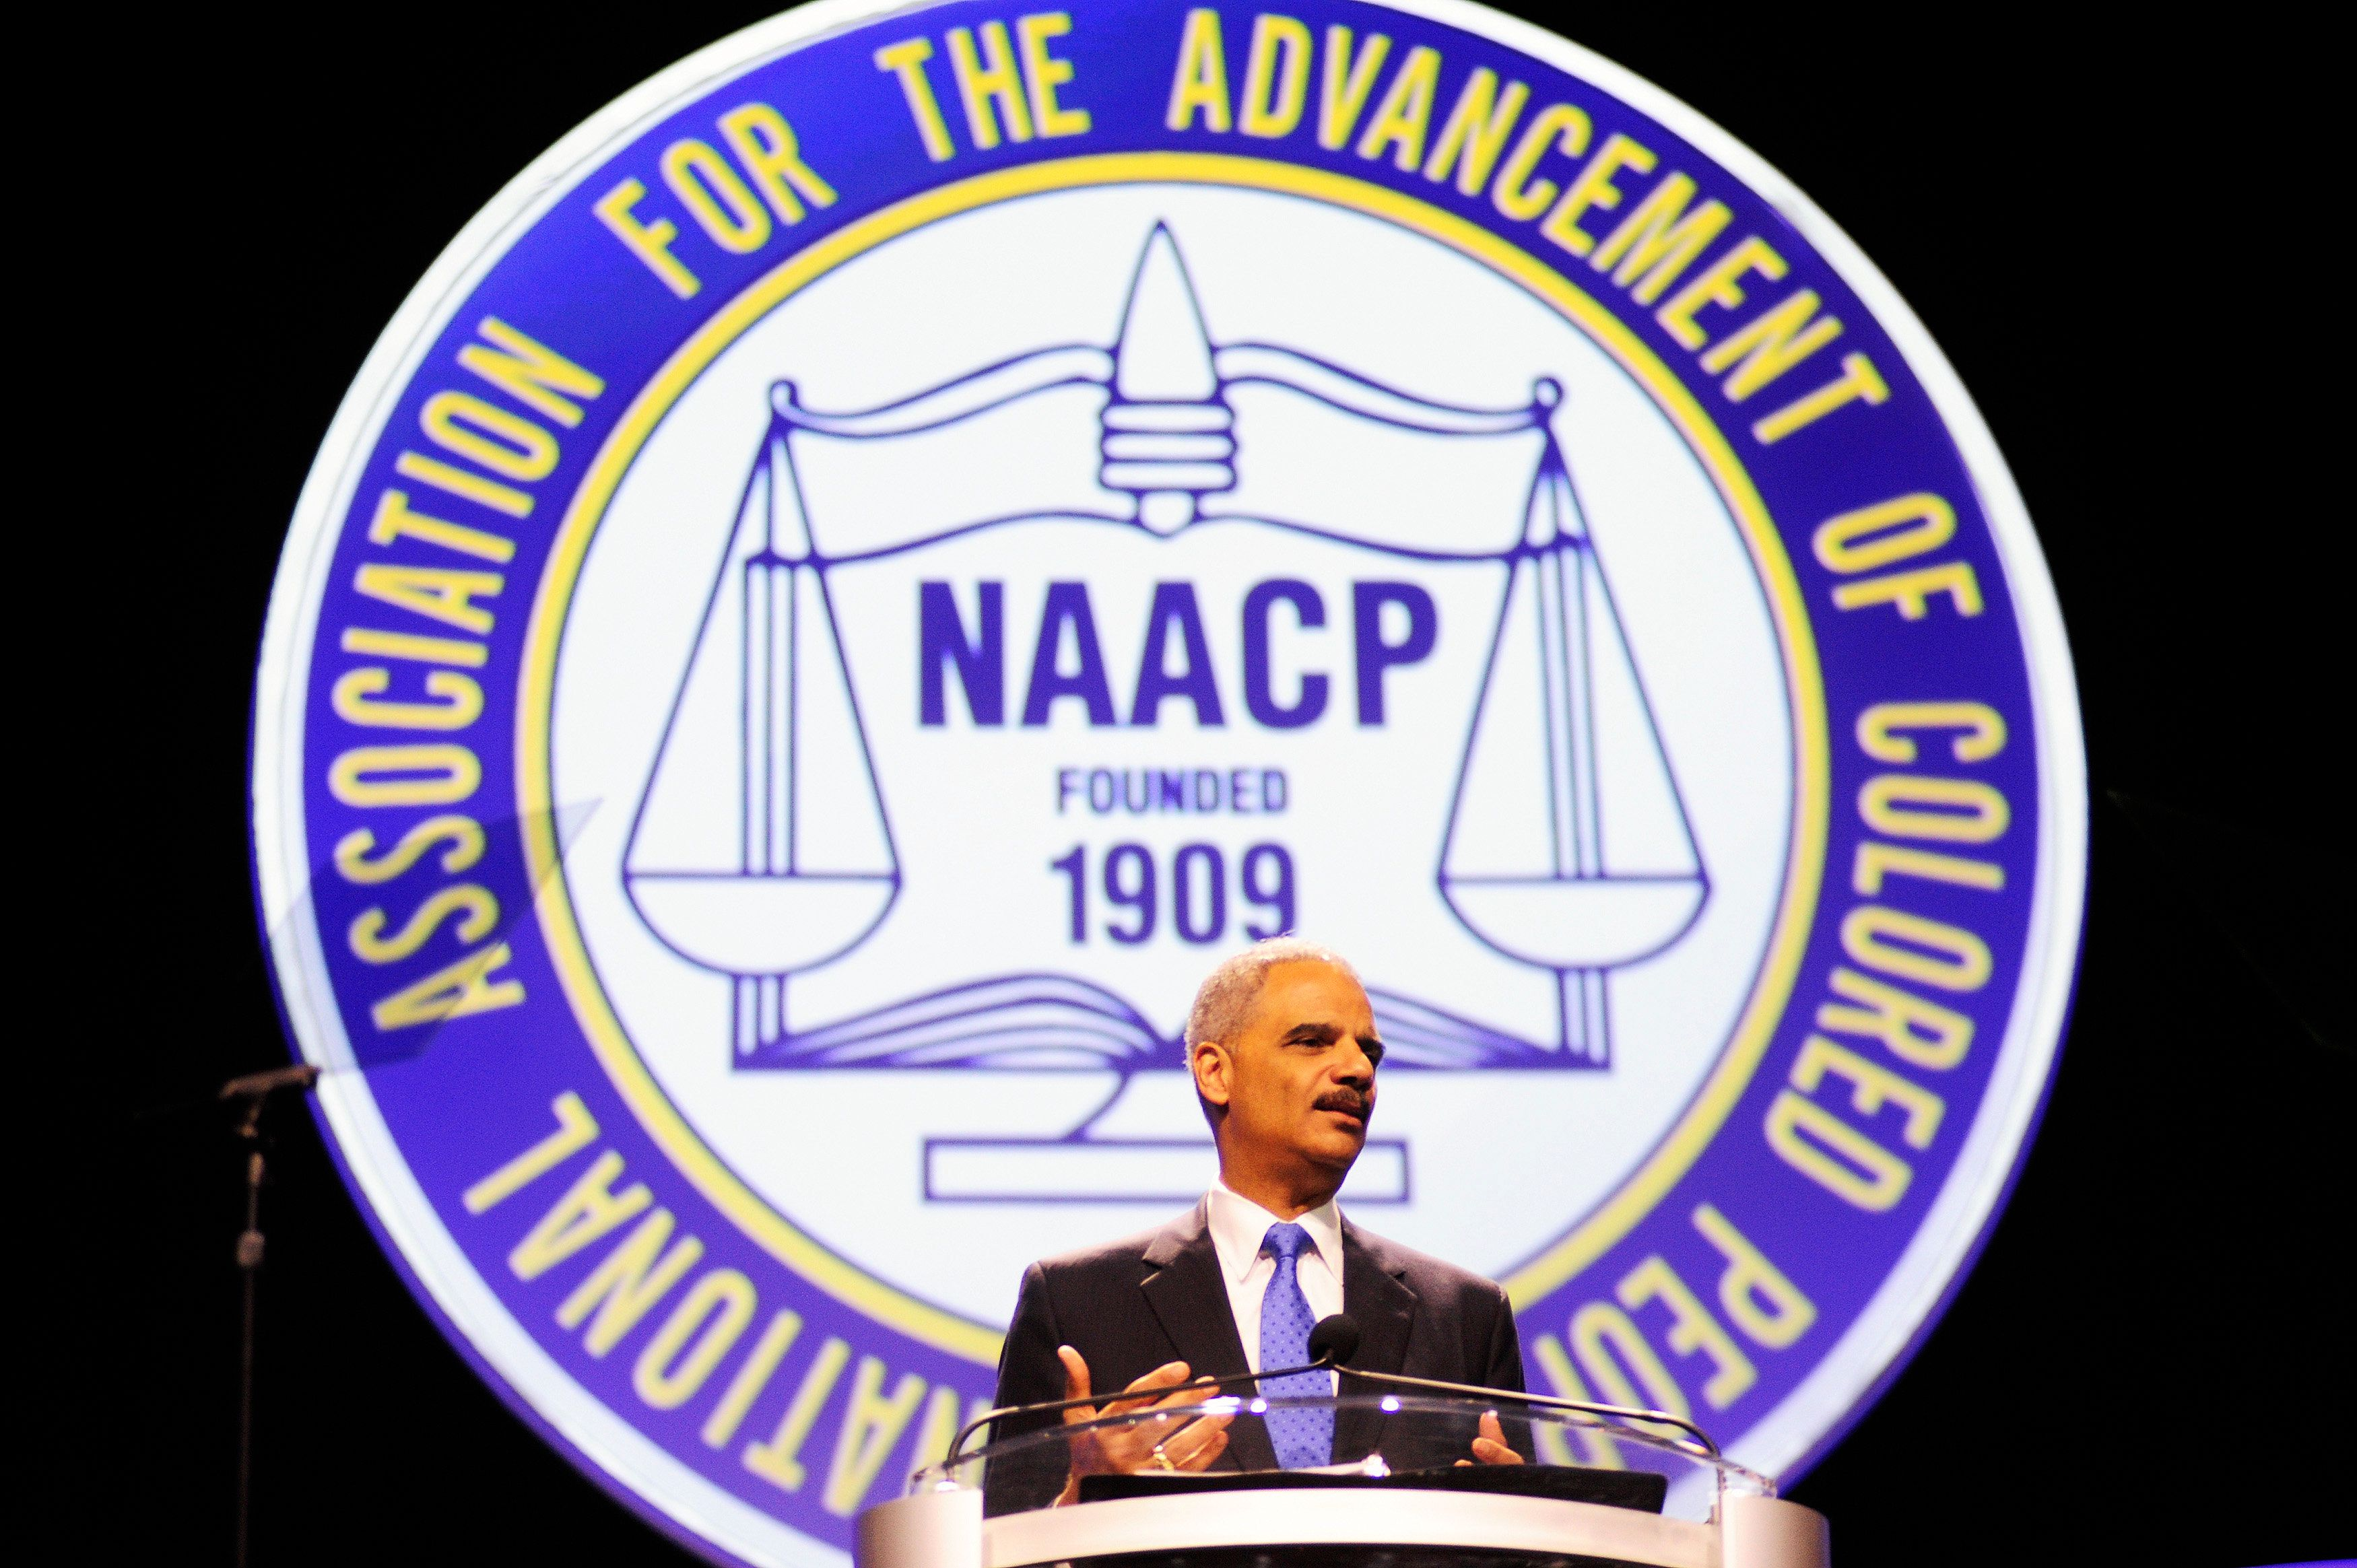 """U.S. Attorney General Eric Holder speaks at the annual convention of the National Association for the Advancement of Colored People (NAACP) in Orlando July 16, 2013. Holder told the major civil rights convention that controversial """"Stand Your Ground"""" self-defense laws that have been adopted in 30 states should be reconsidered.  REUTERS/David Manning  (UNITED STATES - Tags: POLITICS CRIME LAW)"""